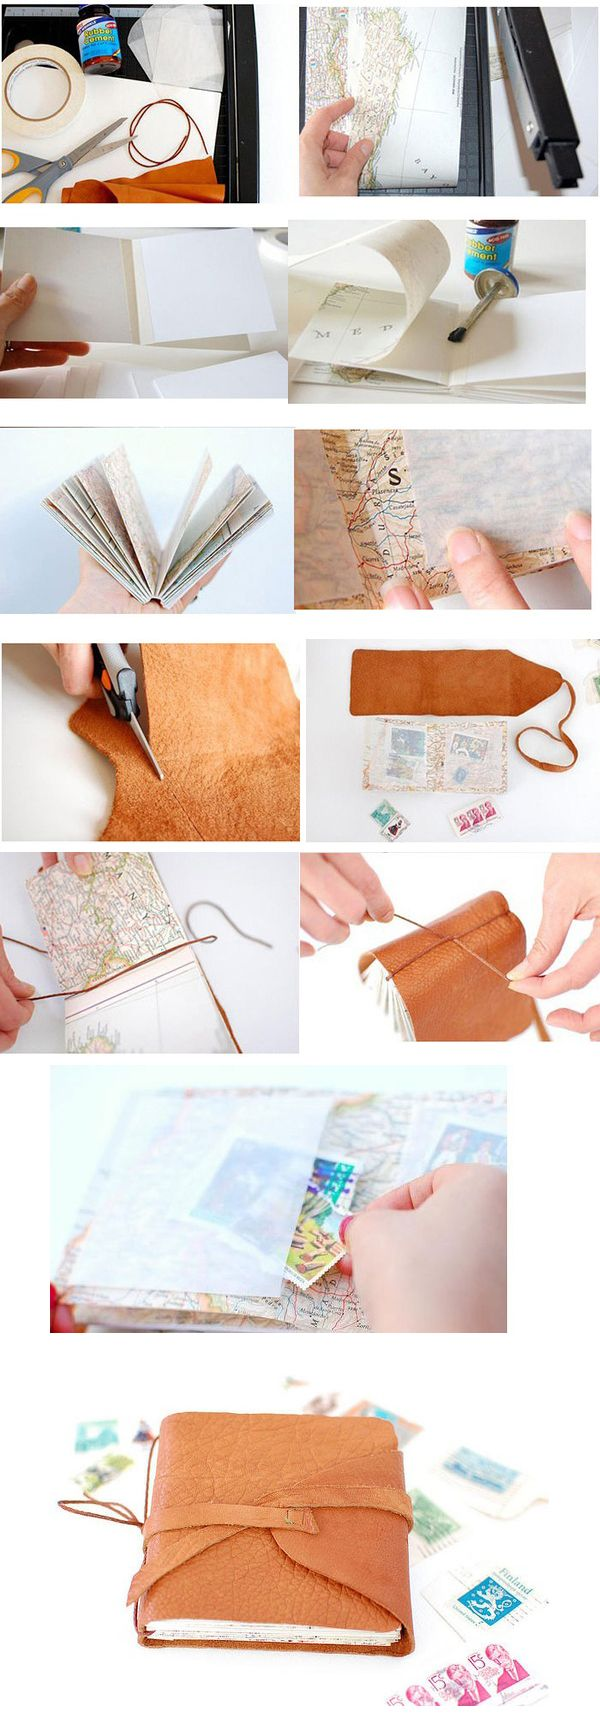 Handmade leather books, every girl should have one.  This is pretty traditional, but I love the simple illustrations that explain the process.